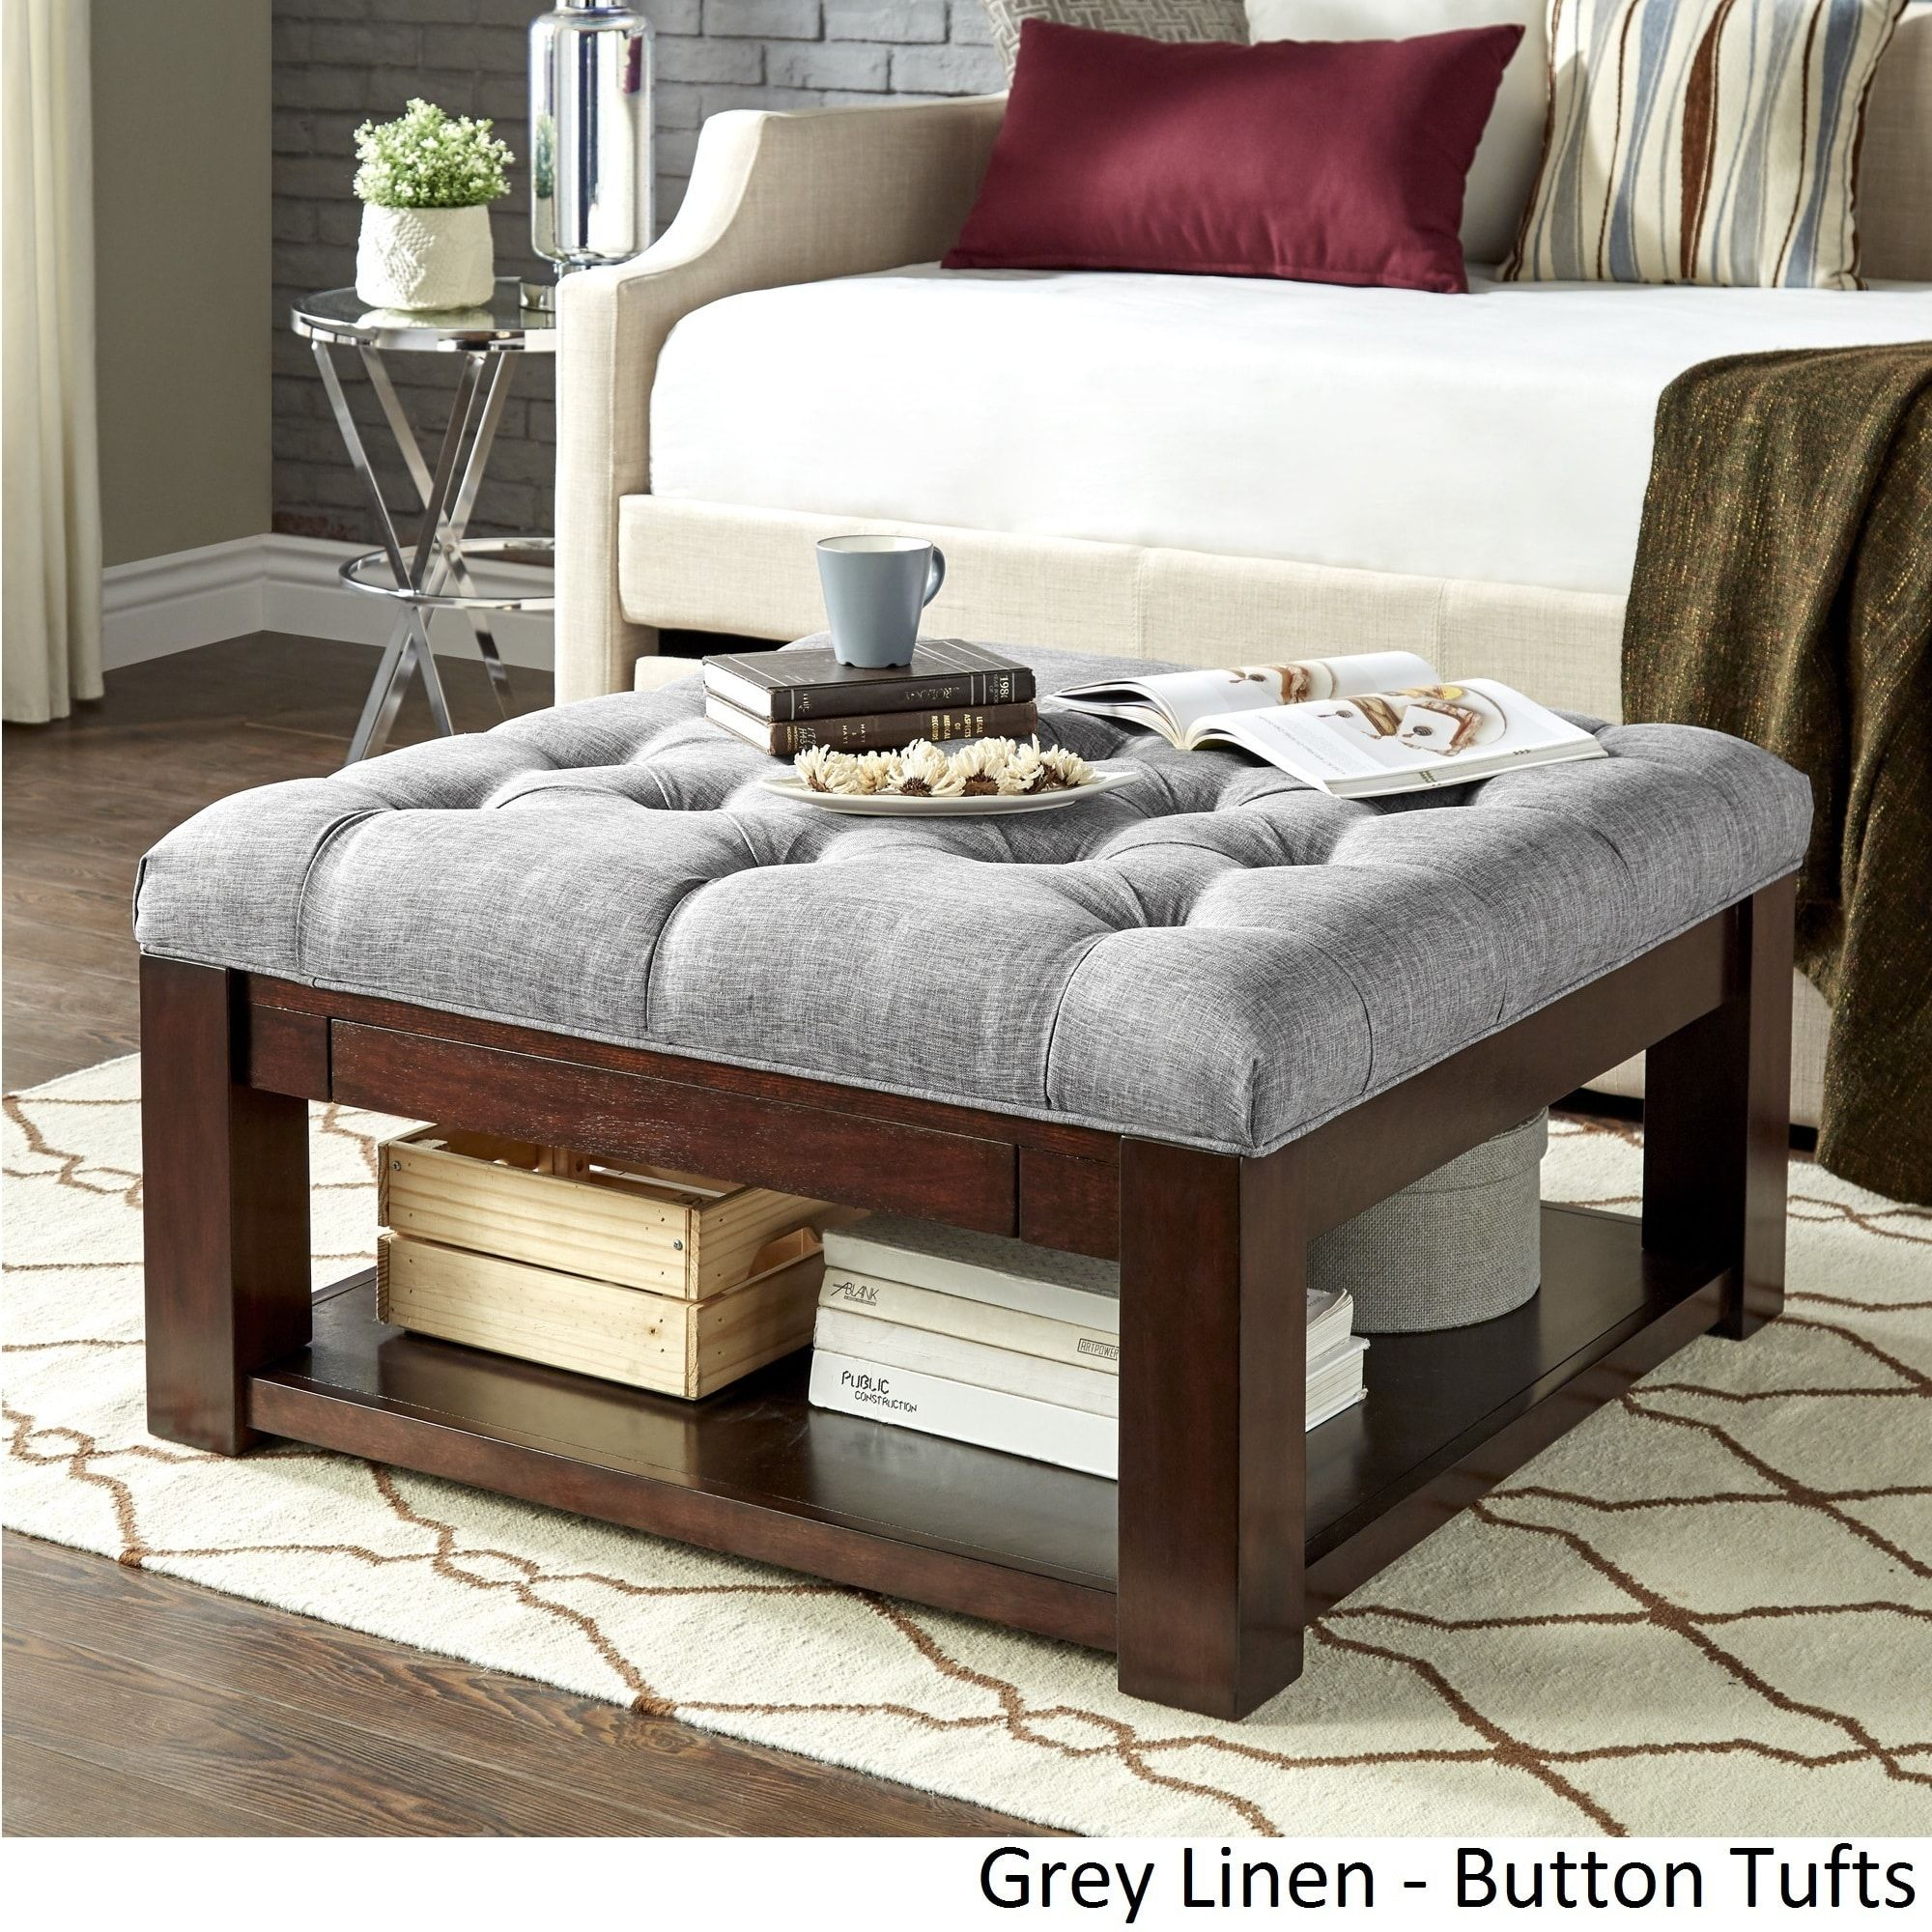 Lennon Espresso Square Storage Ottoman Coffee Table By Inspire Q Clic Ping